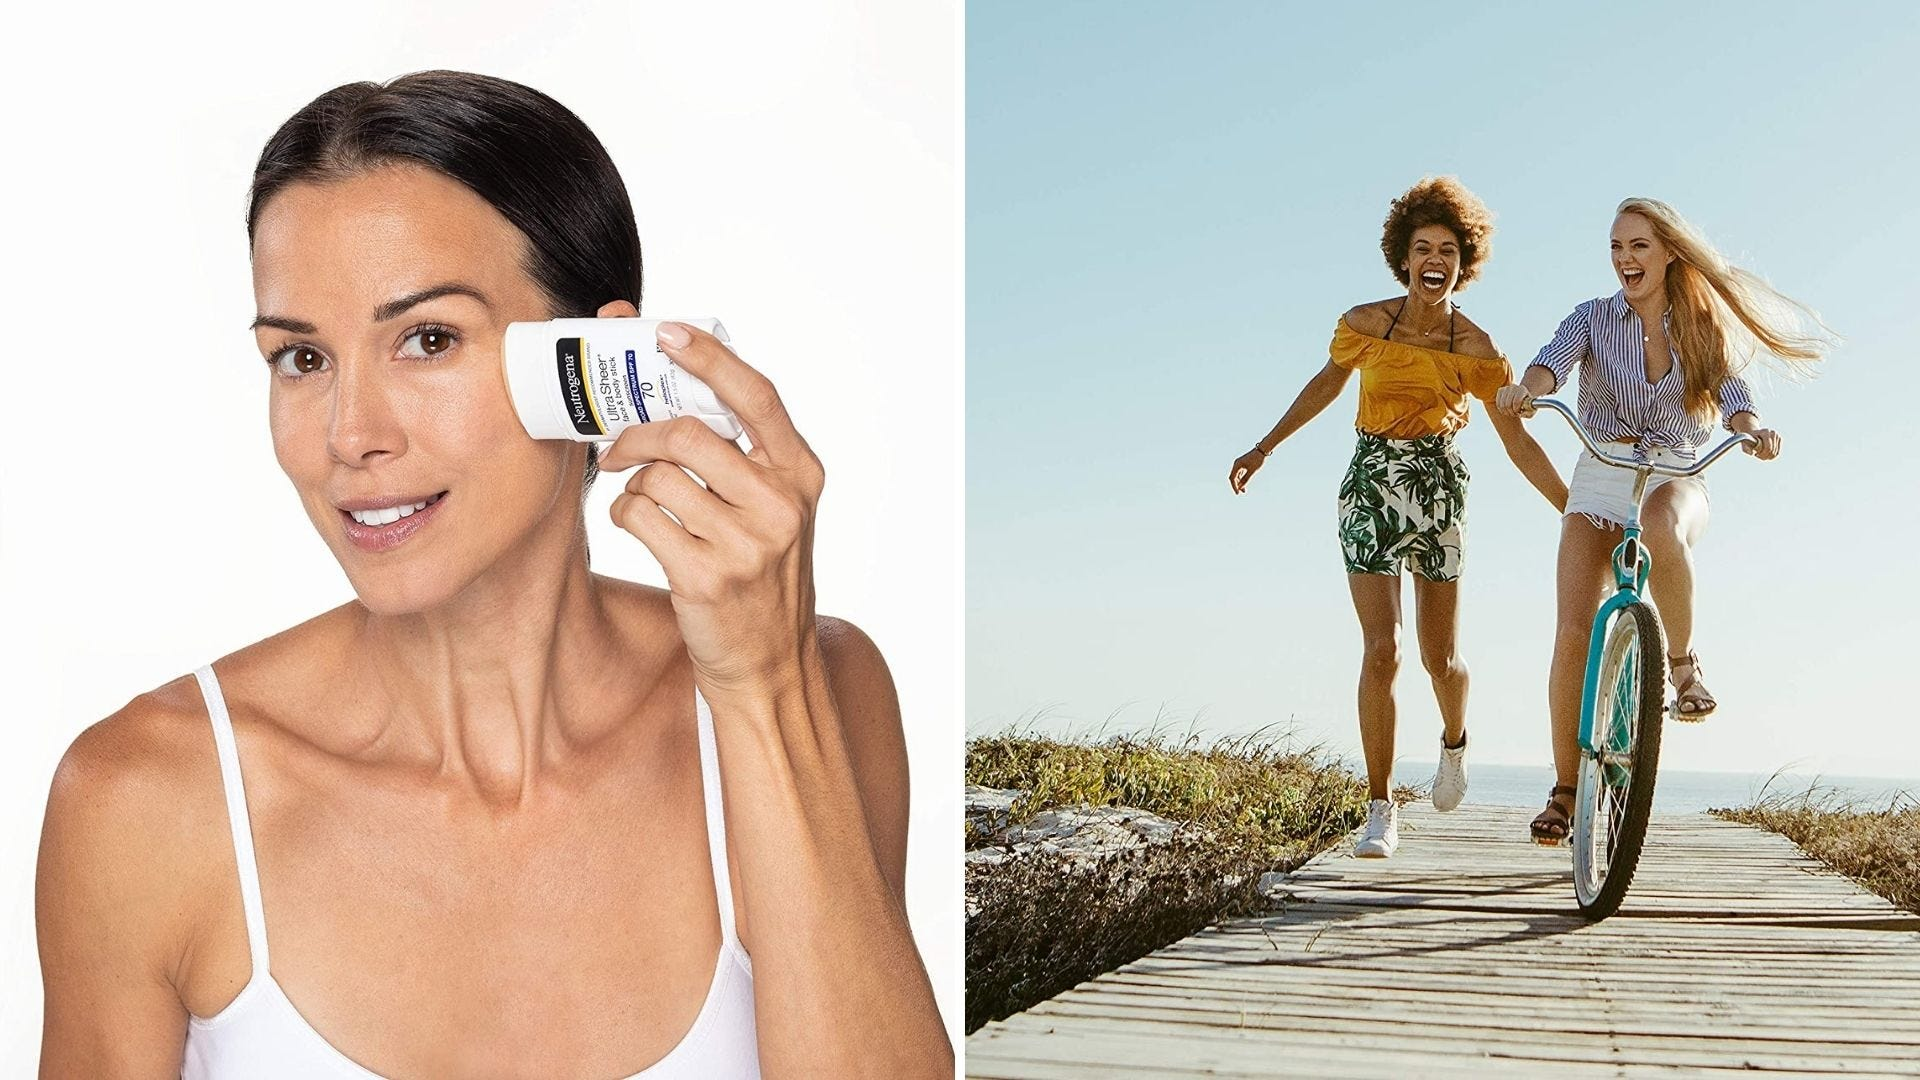 A woman rubs a sunscreen stick on her face and two women bike and run on the sidewalk